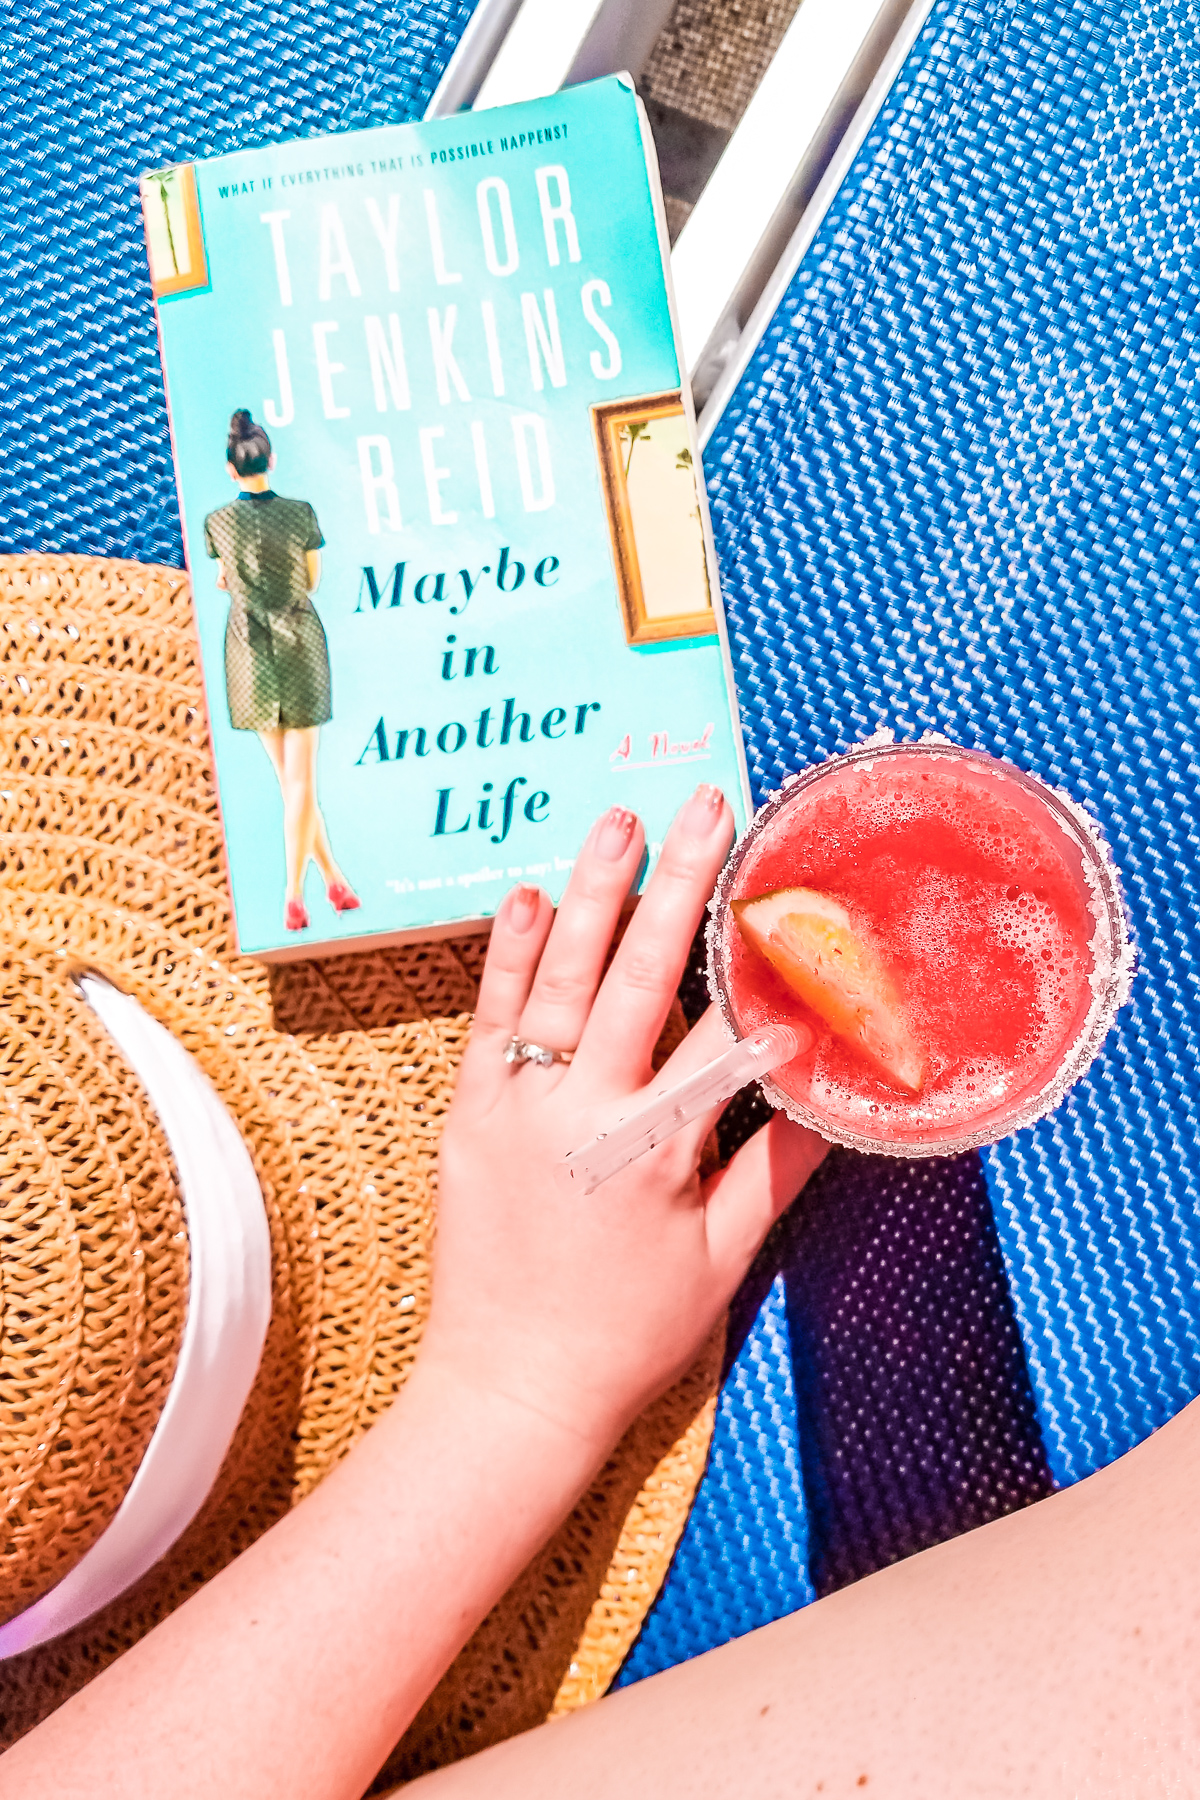 Sunhat, book, and frozen cocktail sitting on a blue lounge chair.